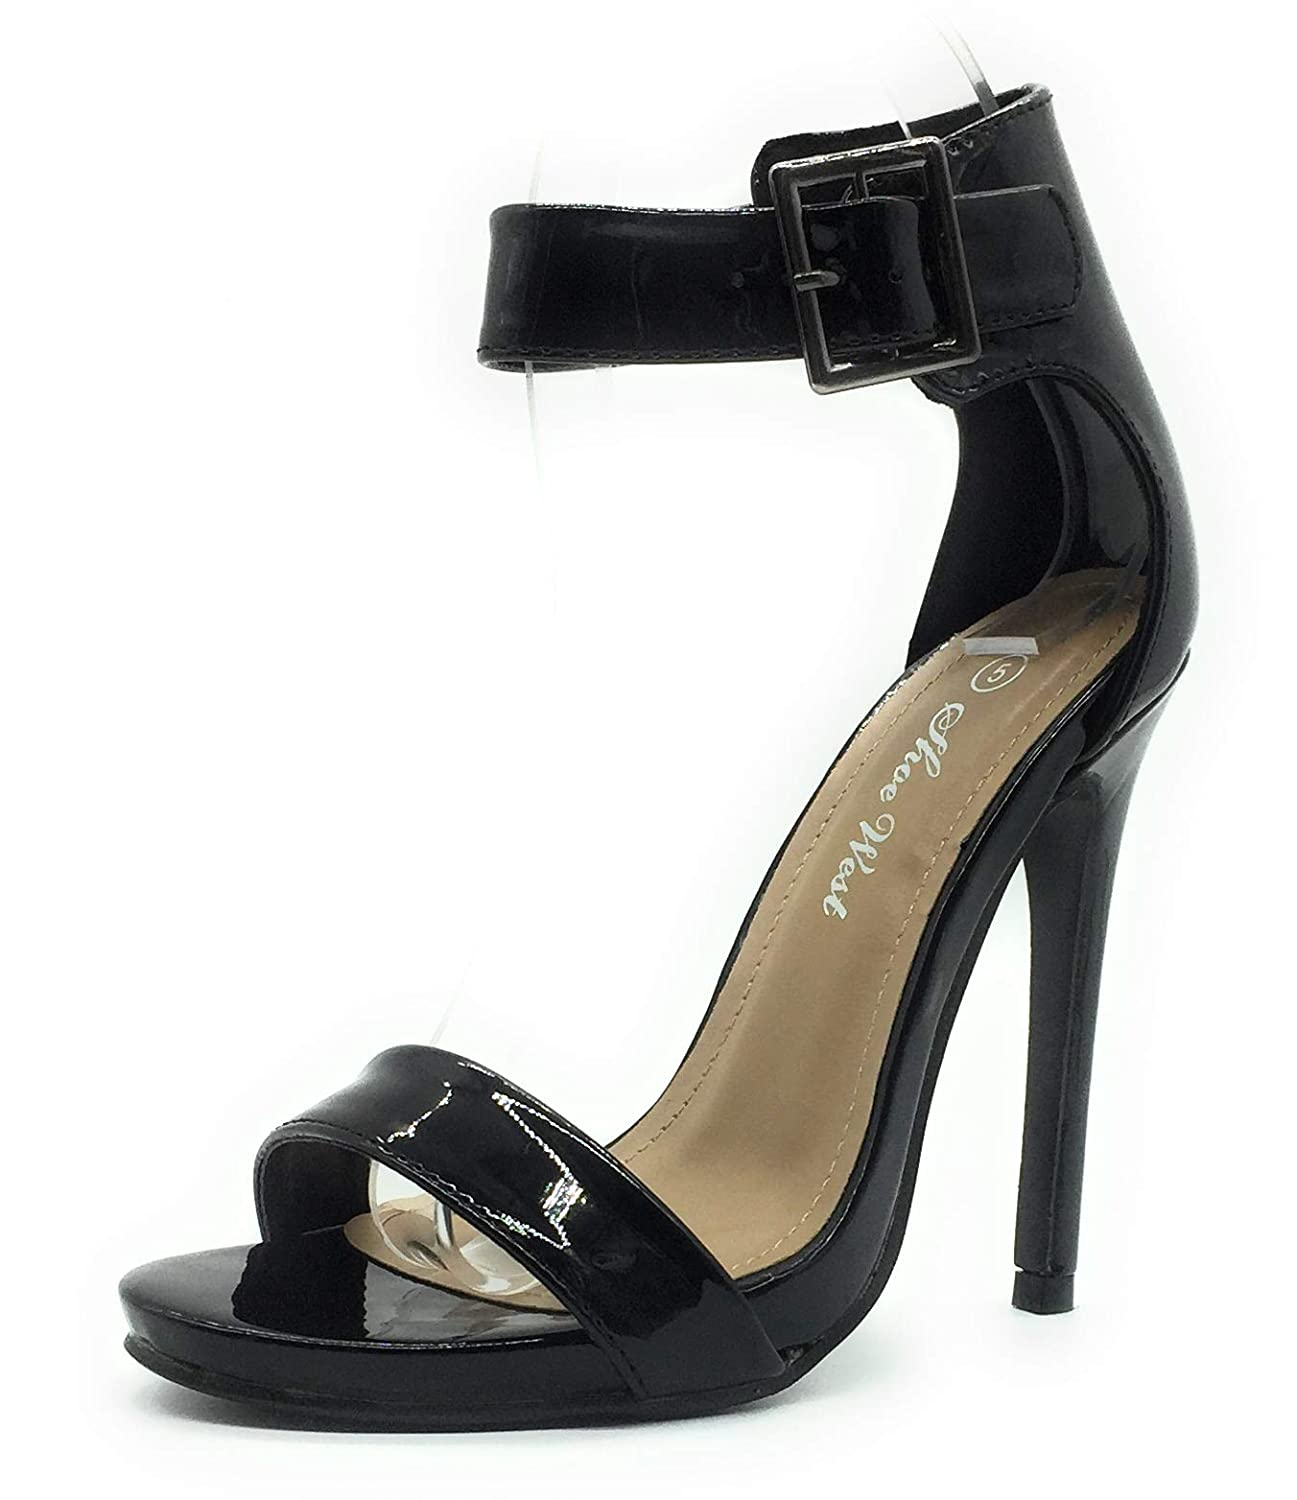 Black Pat Sexy Open Toe Pump shoes -Cross Strap Party Dress Platfoms Ankle Strap Dress High Heels Stilettos